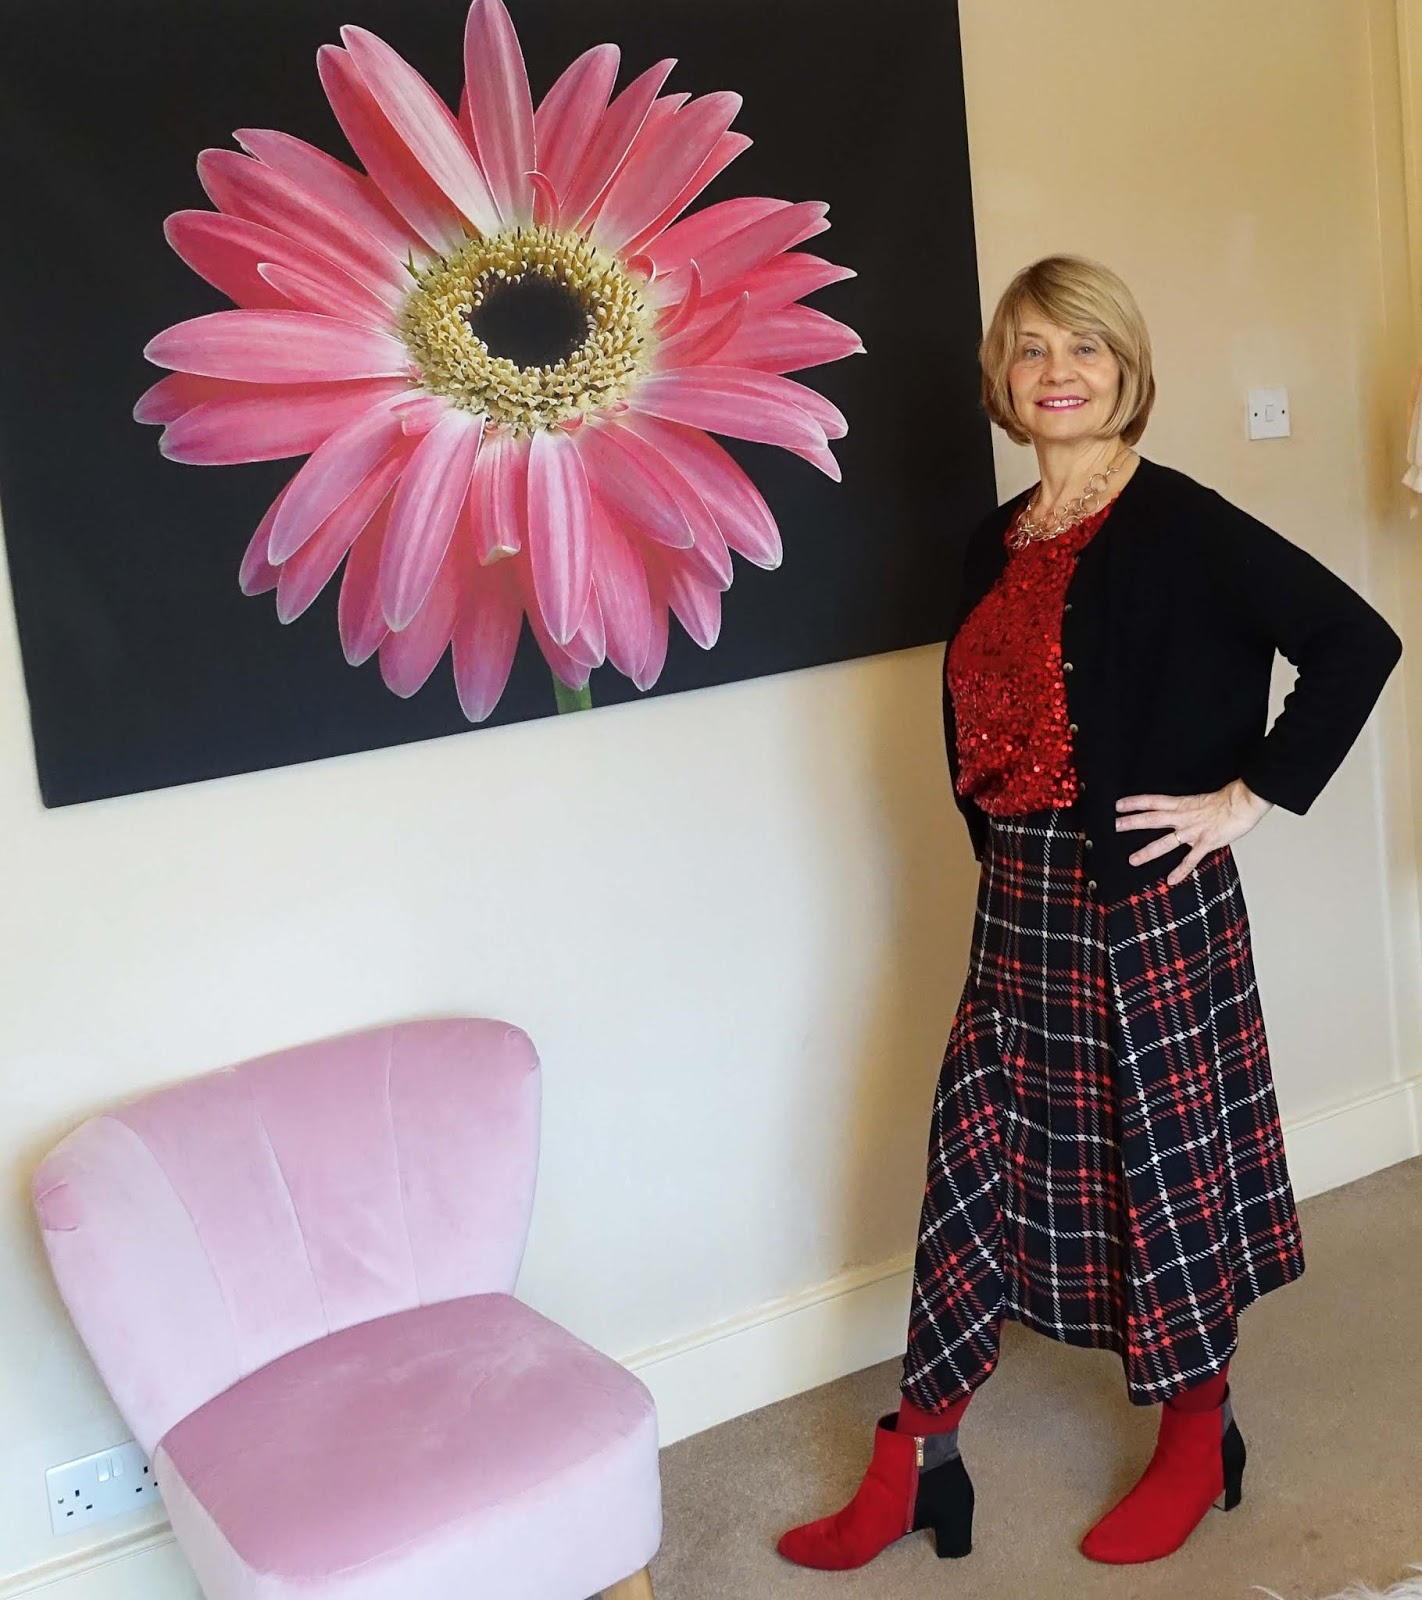 Gail Hanlon from over-50s style blog Is This Mutton in red sequin top, red and black patterned asymmetric skirt and red and black ankle boots